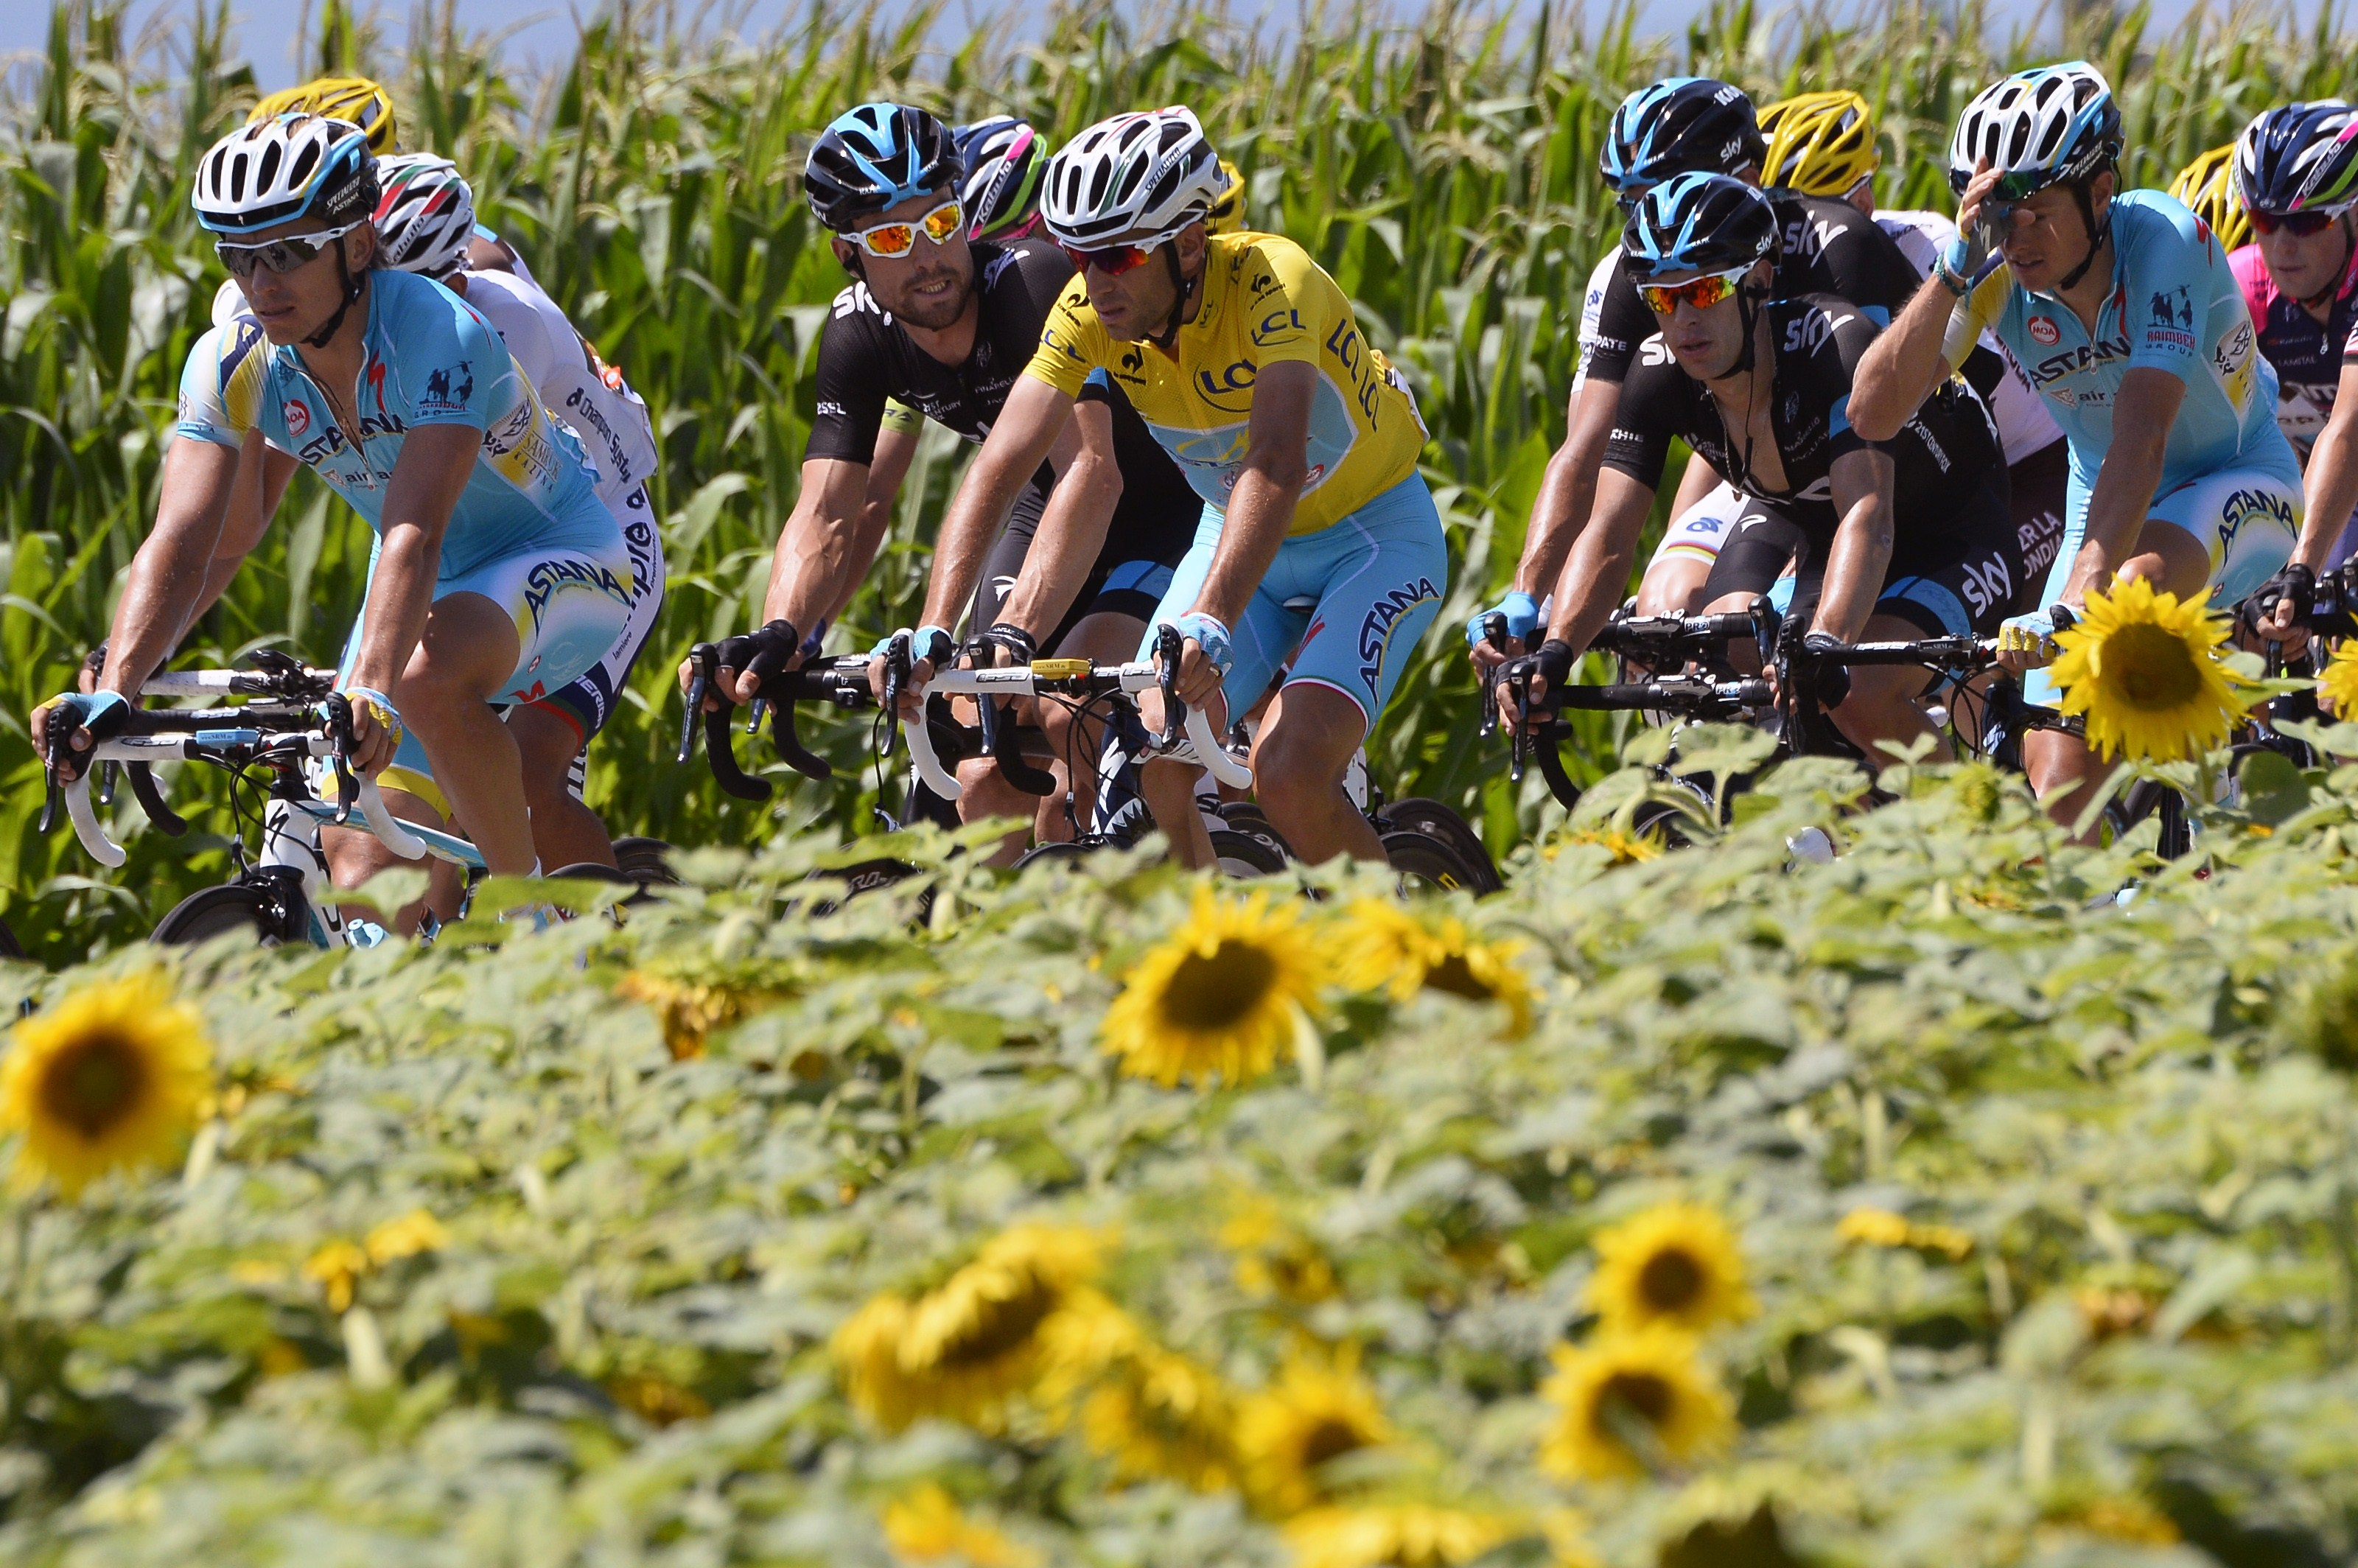 Italy's Vincenzo Nibali wearing the overall leader's yellow jersey, Austria's Bernhard Eisel and Australia's Richie Porte ride in the pack past a sunflowers field during the 197.5 km thirteenth stage.